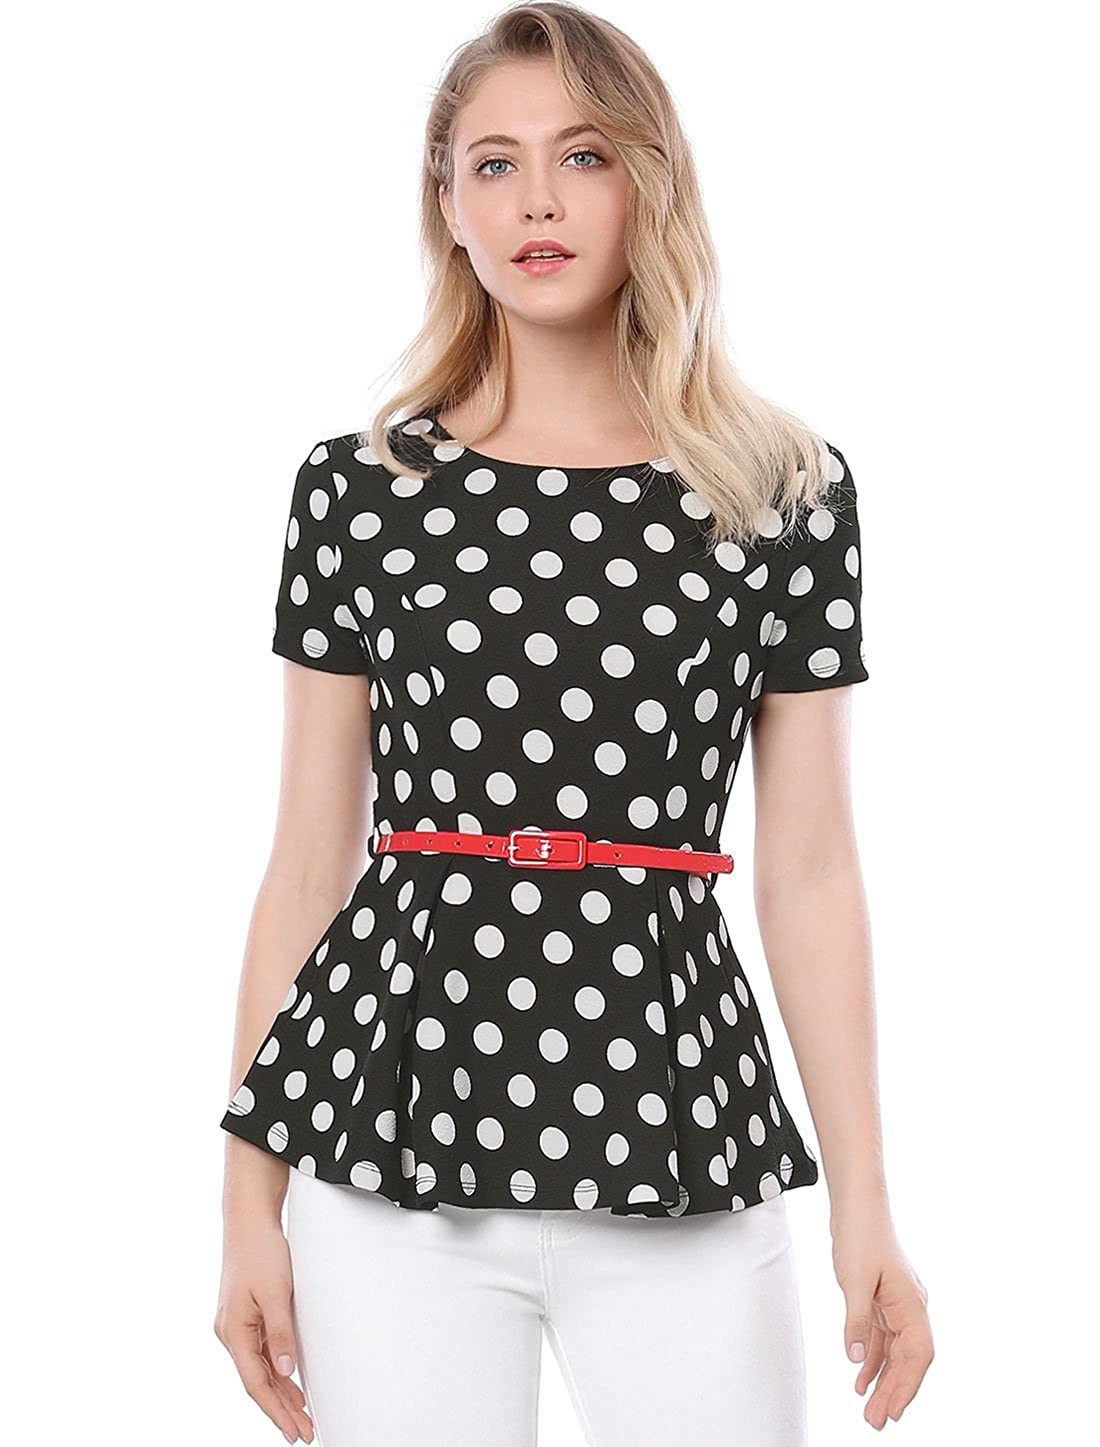 c0542a2053c46c Round Neck, Polka Dots, Peplum, Flared Hem, Contrast Belted Occasion:  Suitable for Working, Shopping, Coffee Shop, Party etc